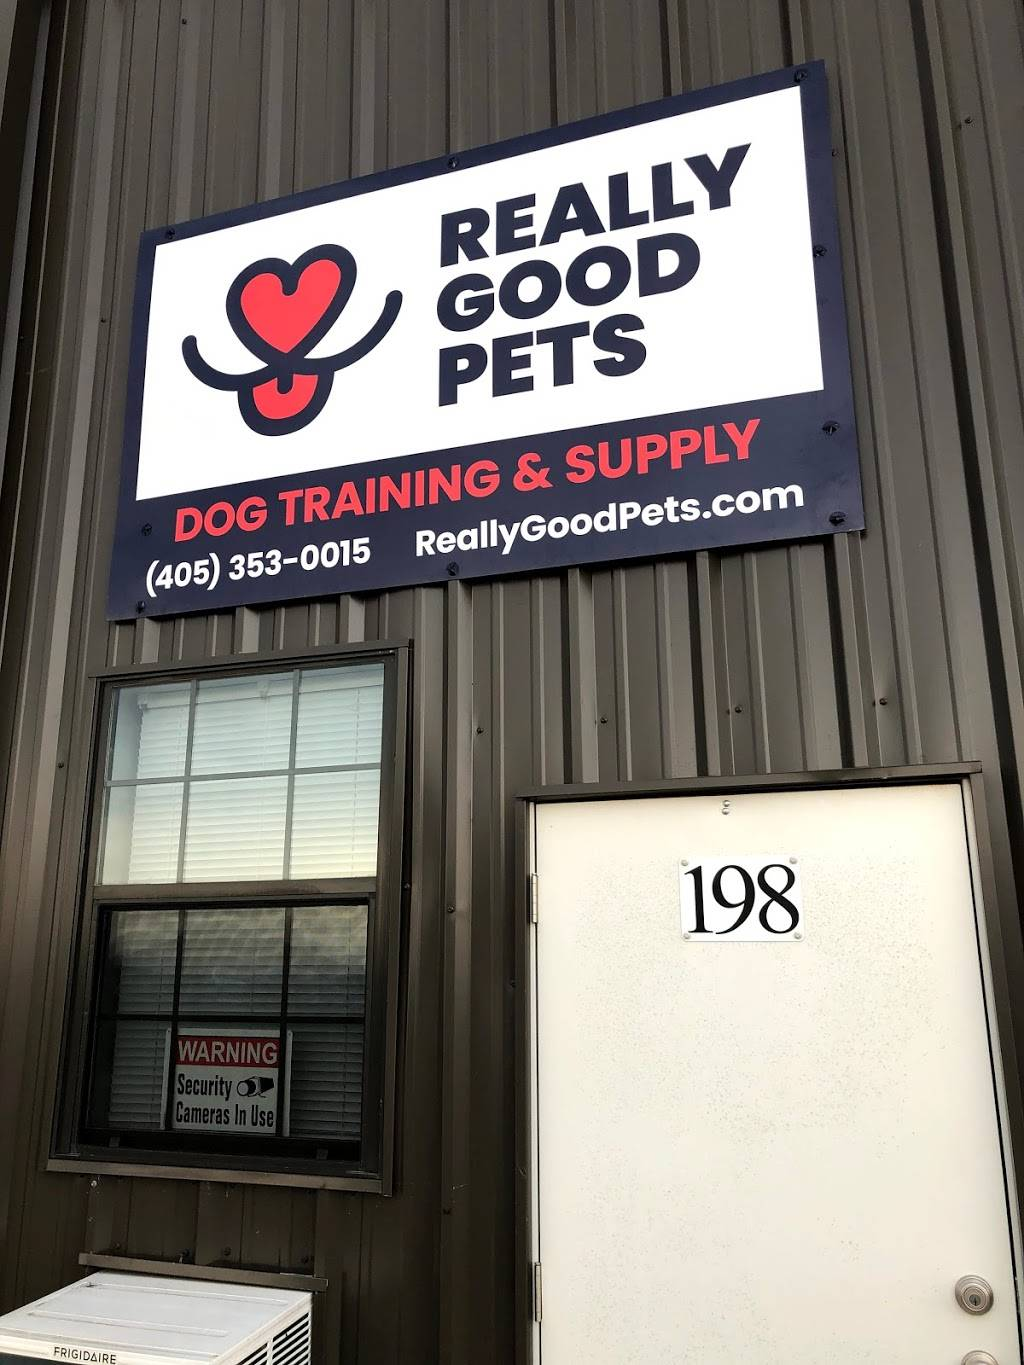 Really Good Pets LLC - store  | Photo 1 of 8 | Address: 198 Opportunity Drive, Norman, OK 73071, USA | Phone: (405) 353-0015